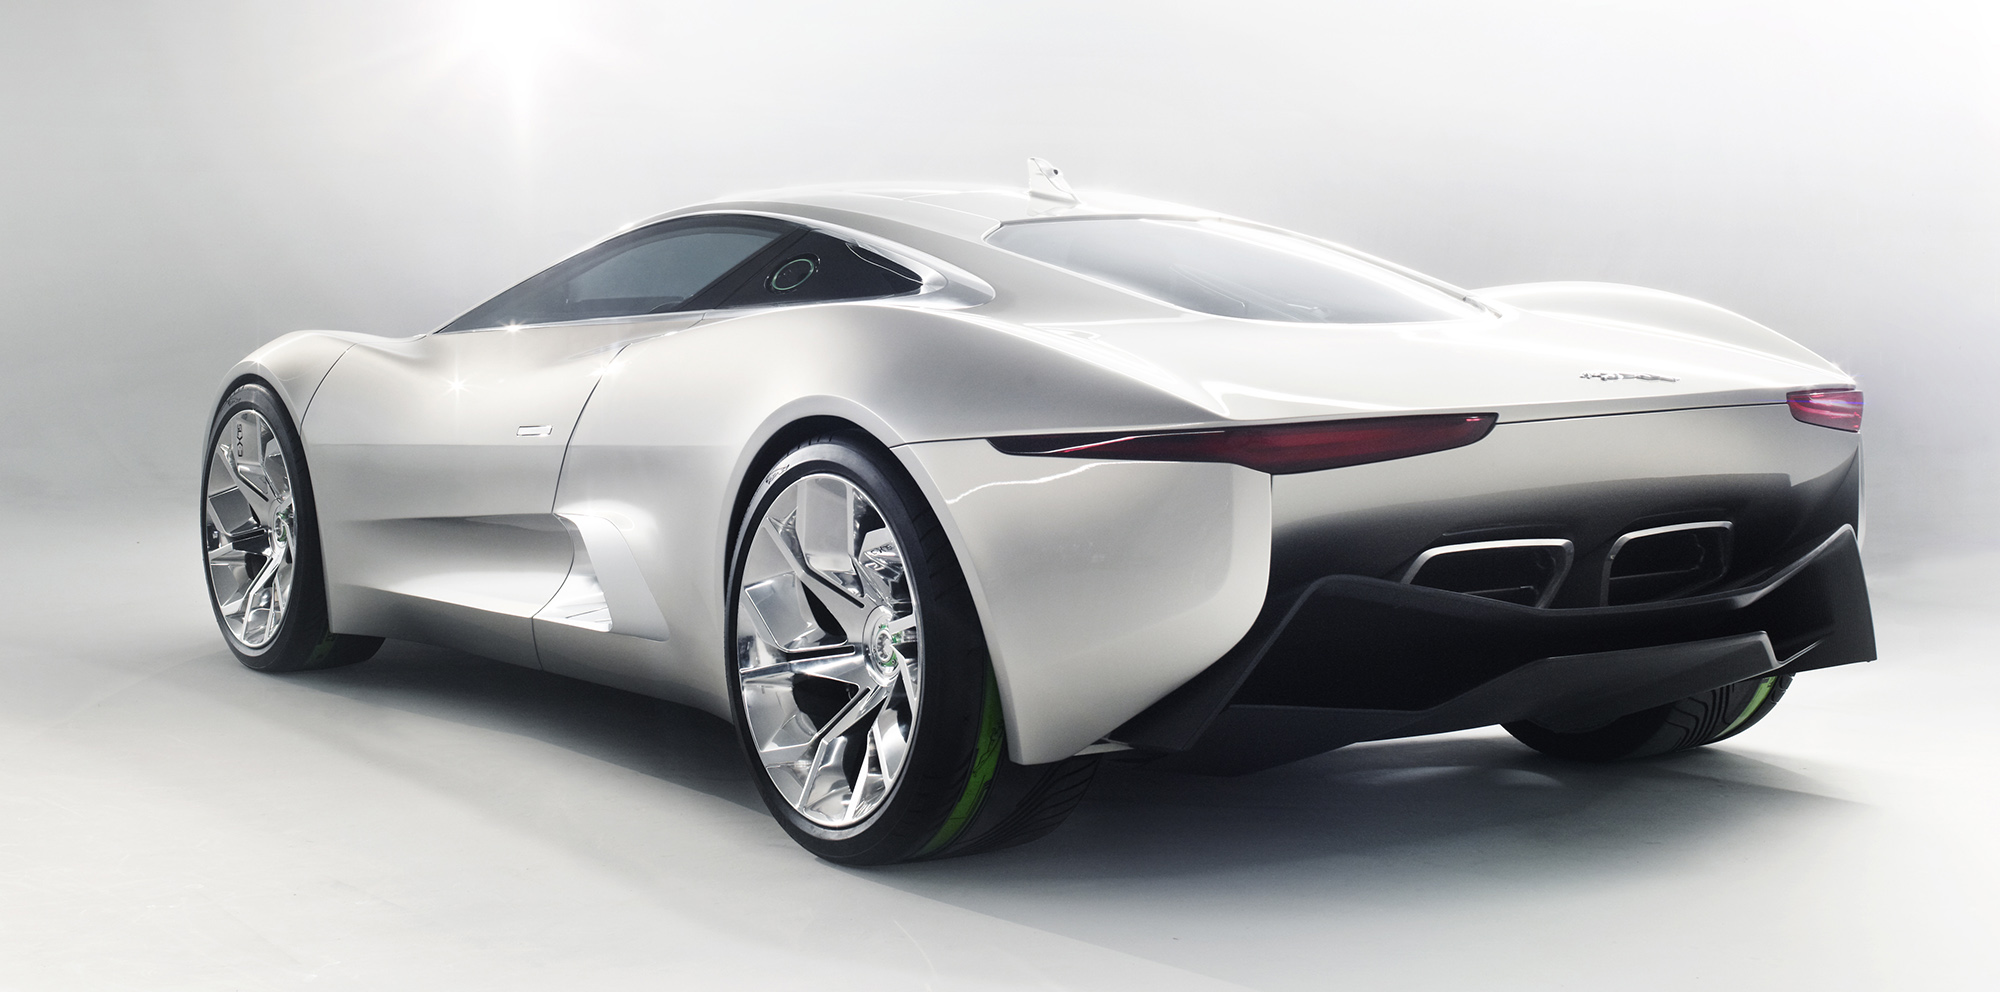 jaguar c x75 concept car to be villain 39 s vehicle in next bond film spectre report photos 1. Black Bedroom Furniture Sets. Home Design Ideas